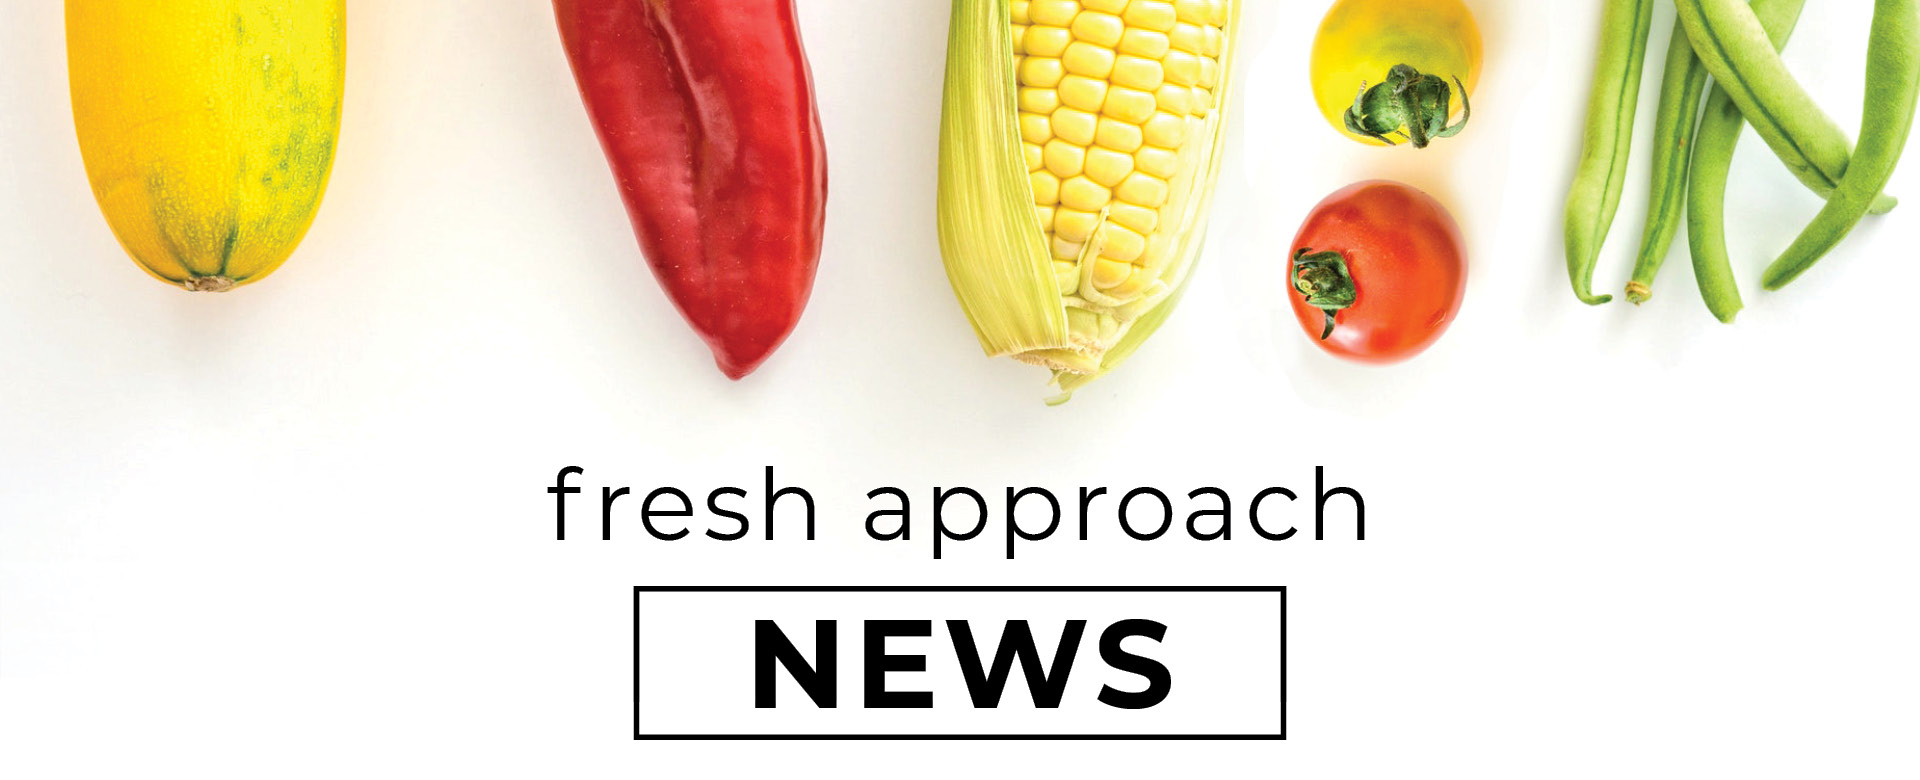 Fresh Approach Blog News Updates Current Events in Healthy Food Access in San Francisco Bay Area squash pepper corn tomatoes green beans